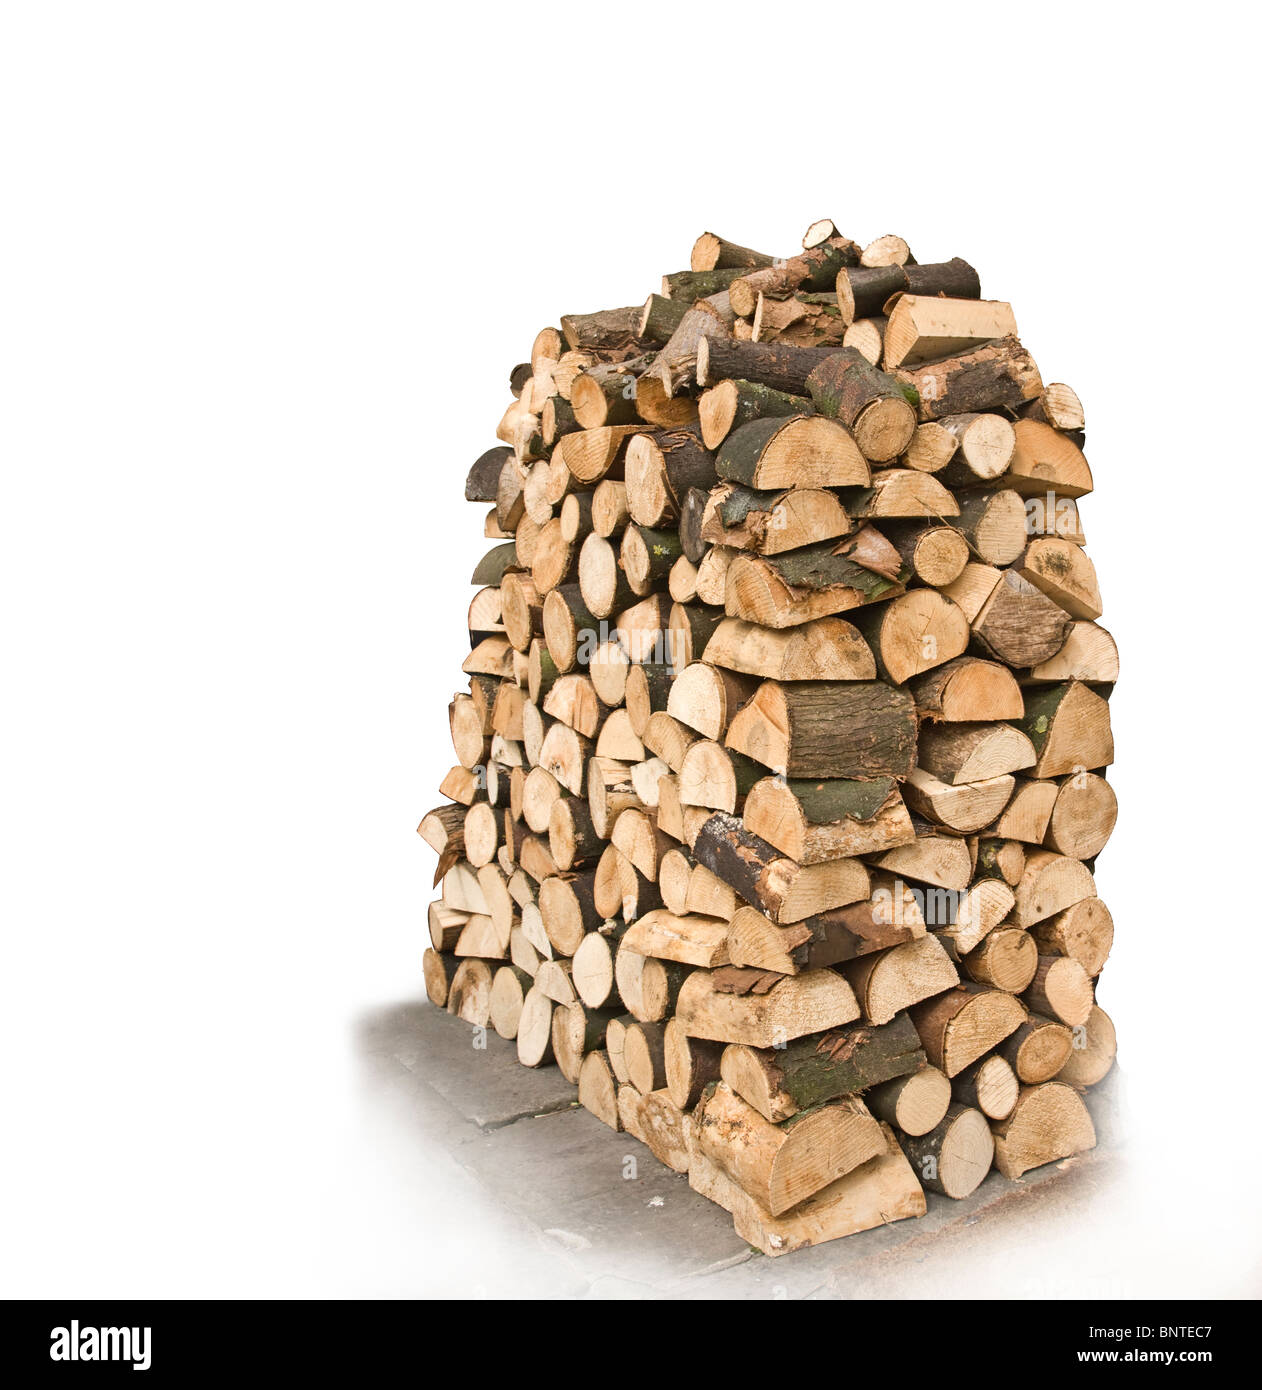 stack of logs for firewood - Stock Image